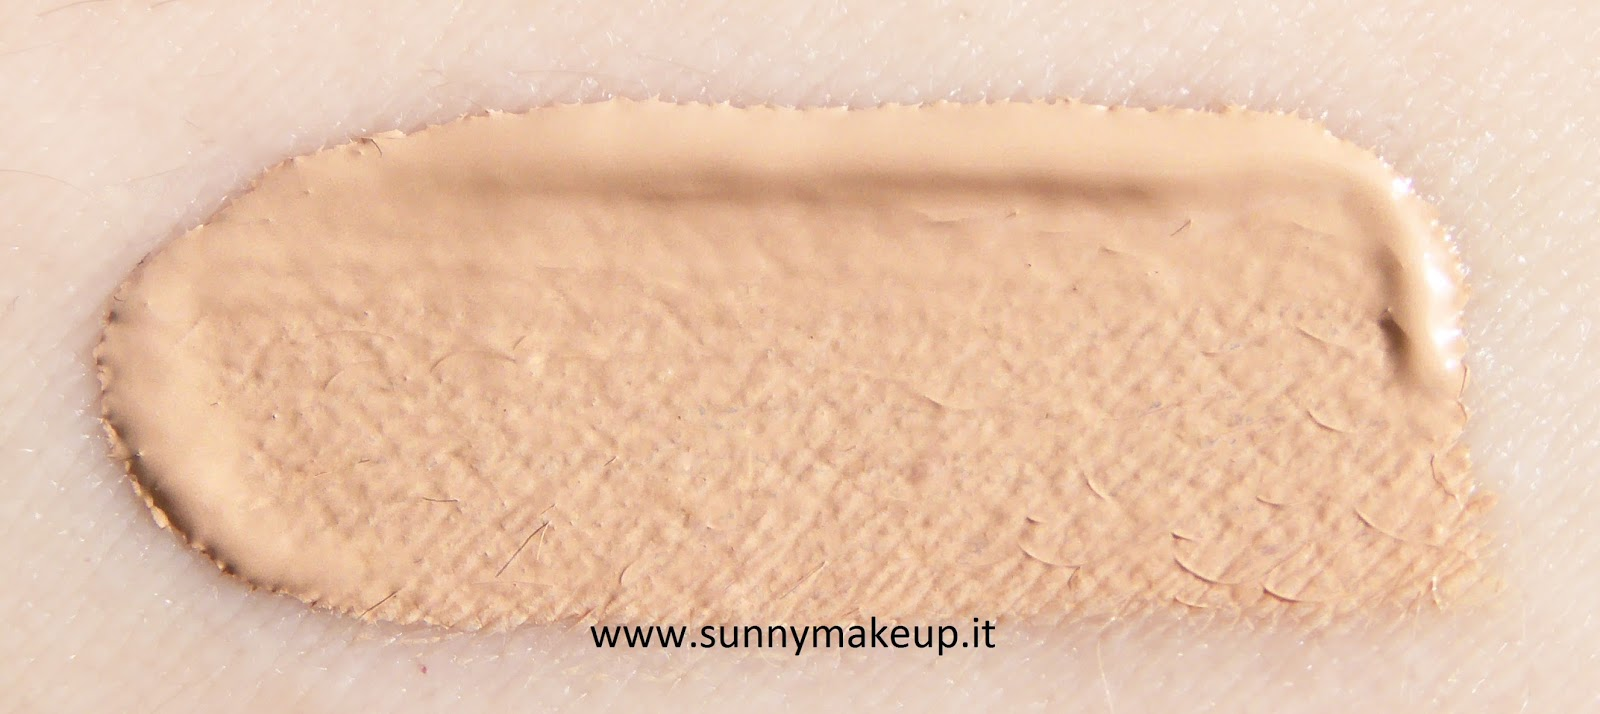 swatch Clinique - Beyond Perfecting. Fondotinta e correttore nella colorazione 06 Ivory.